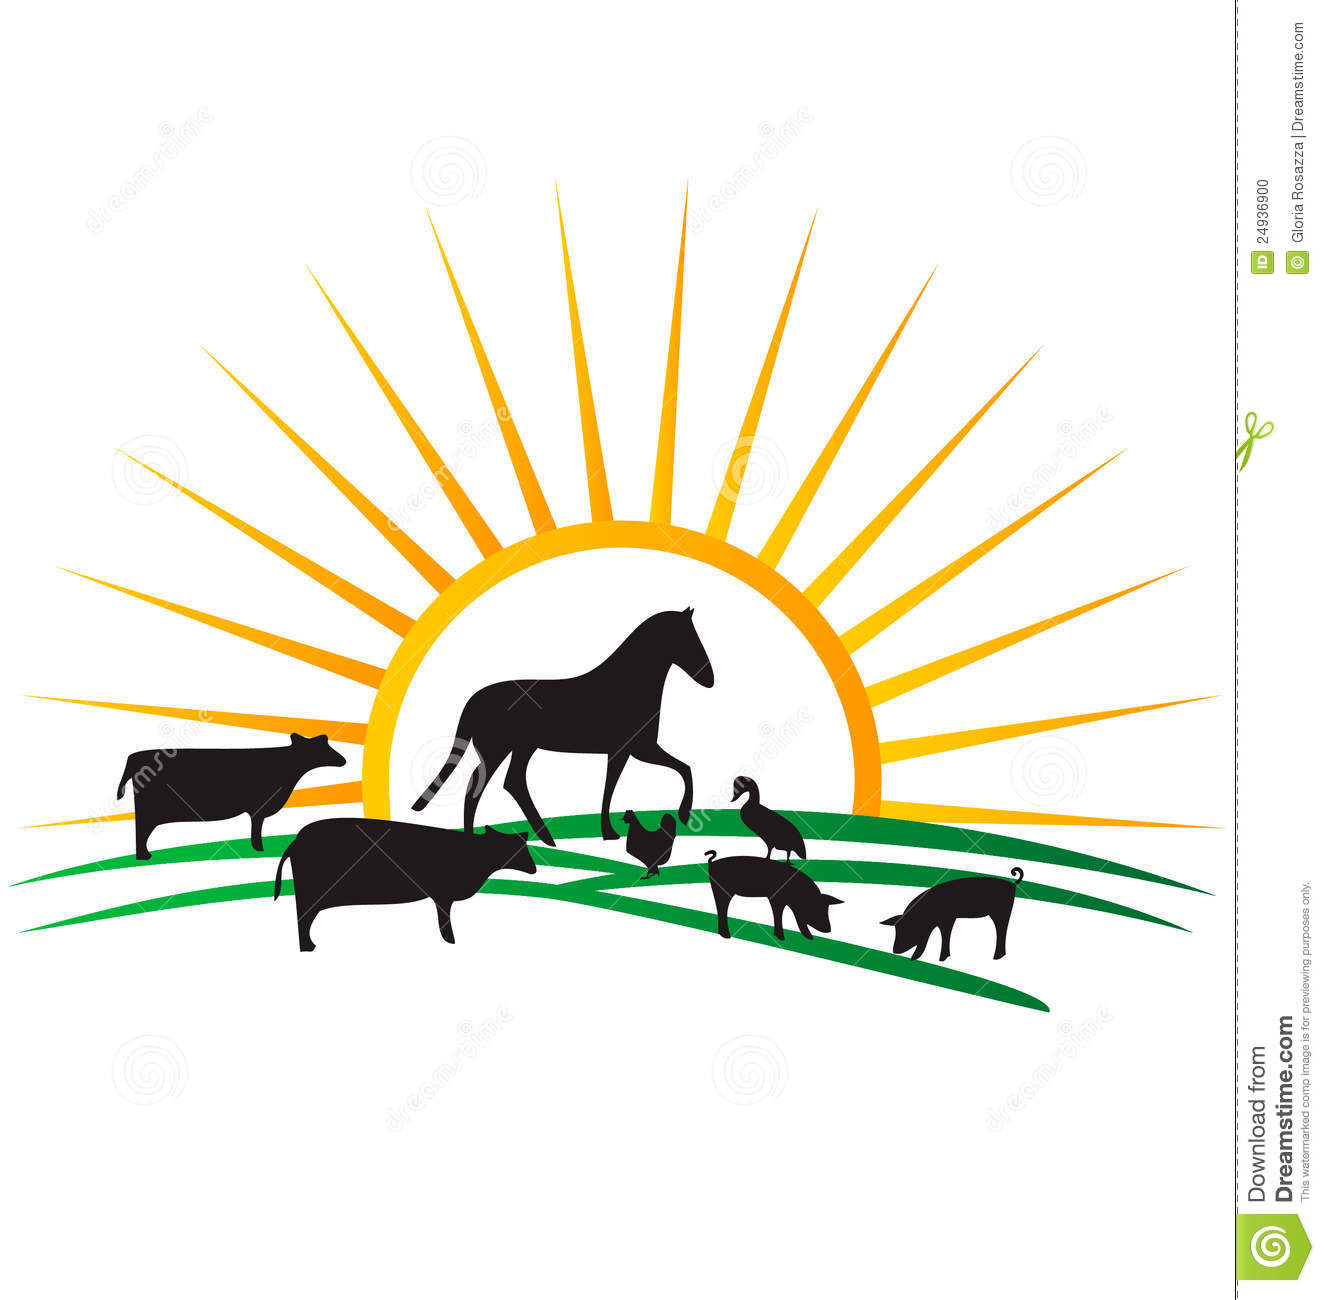 farm animal silhouettes logo stock vector illustration of donkey rh dreamstime com Cartoon Pictures of Farms and Crops Troctors Free River Vector